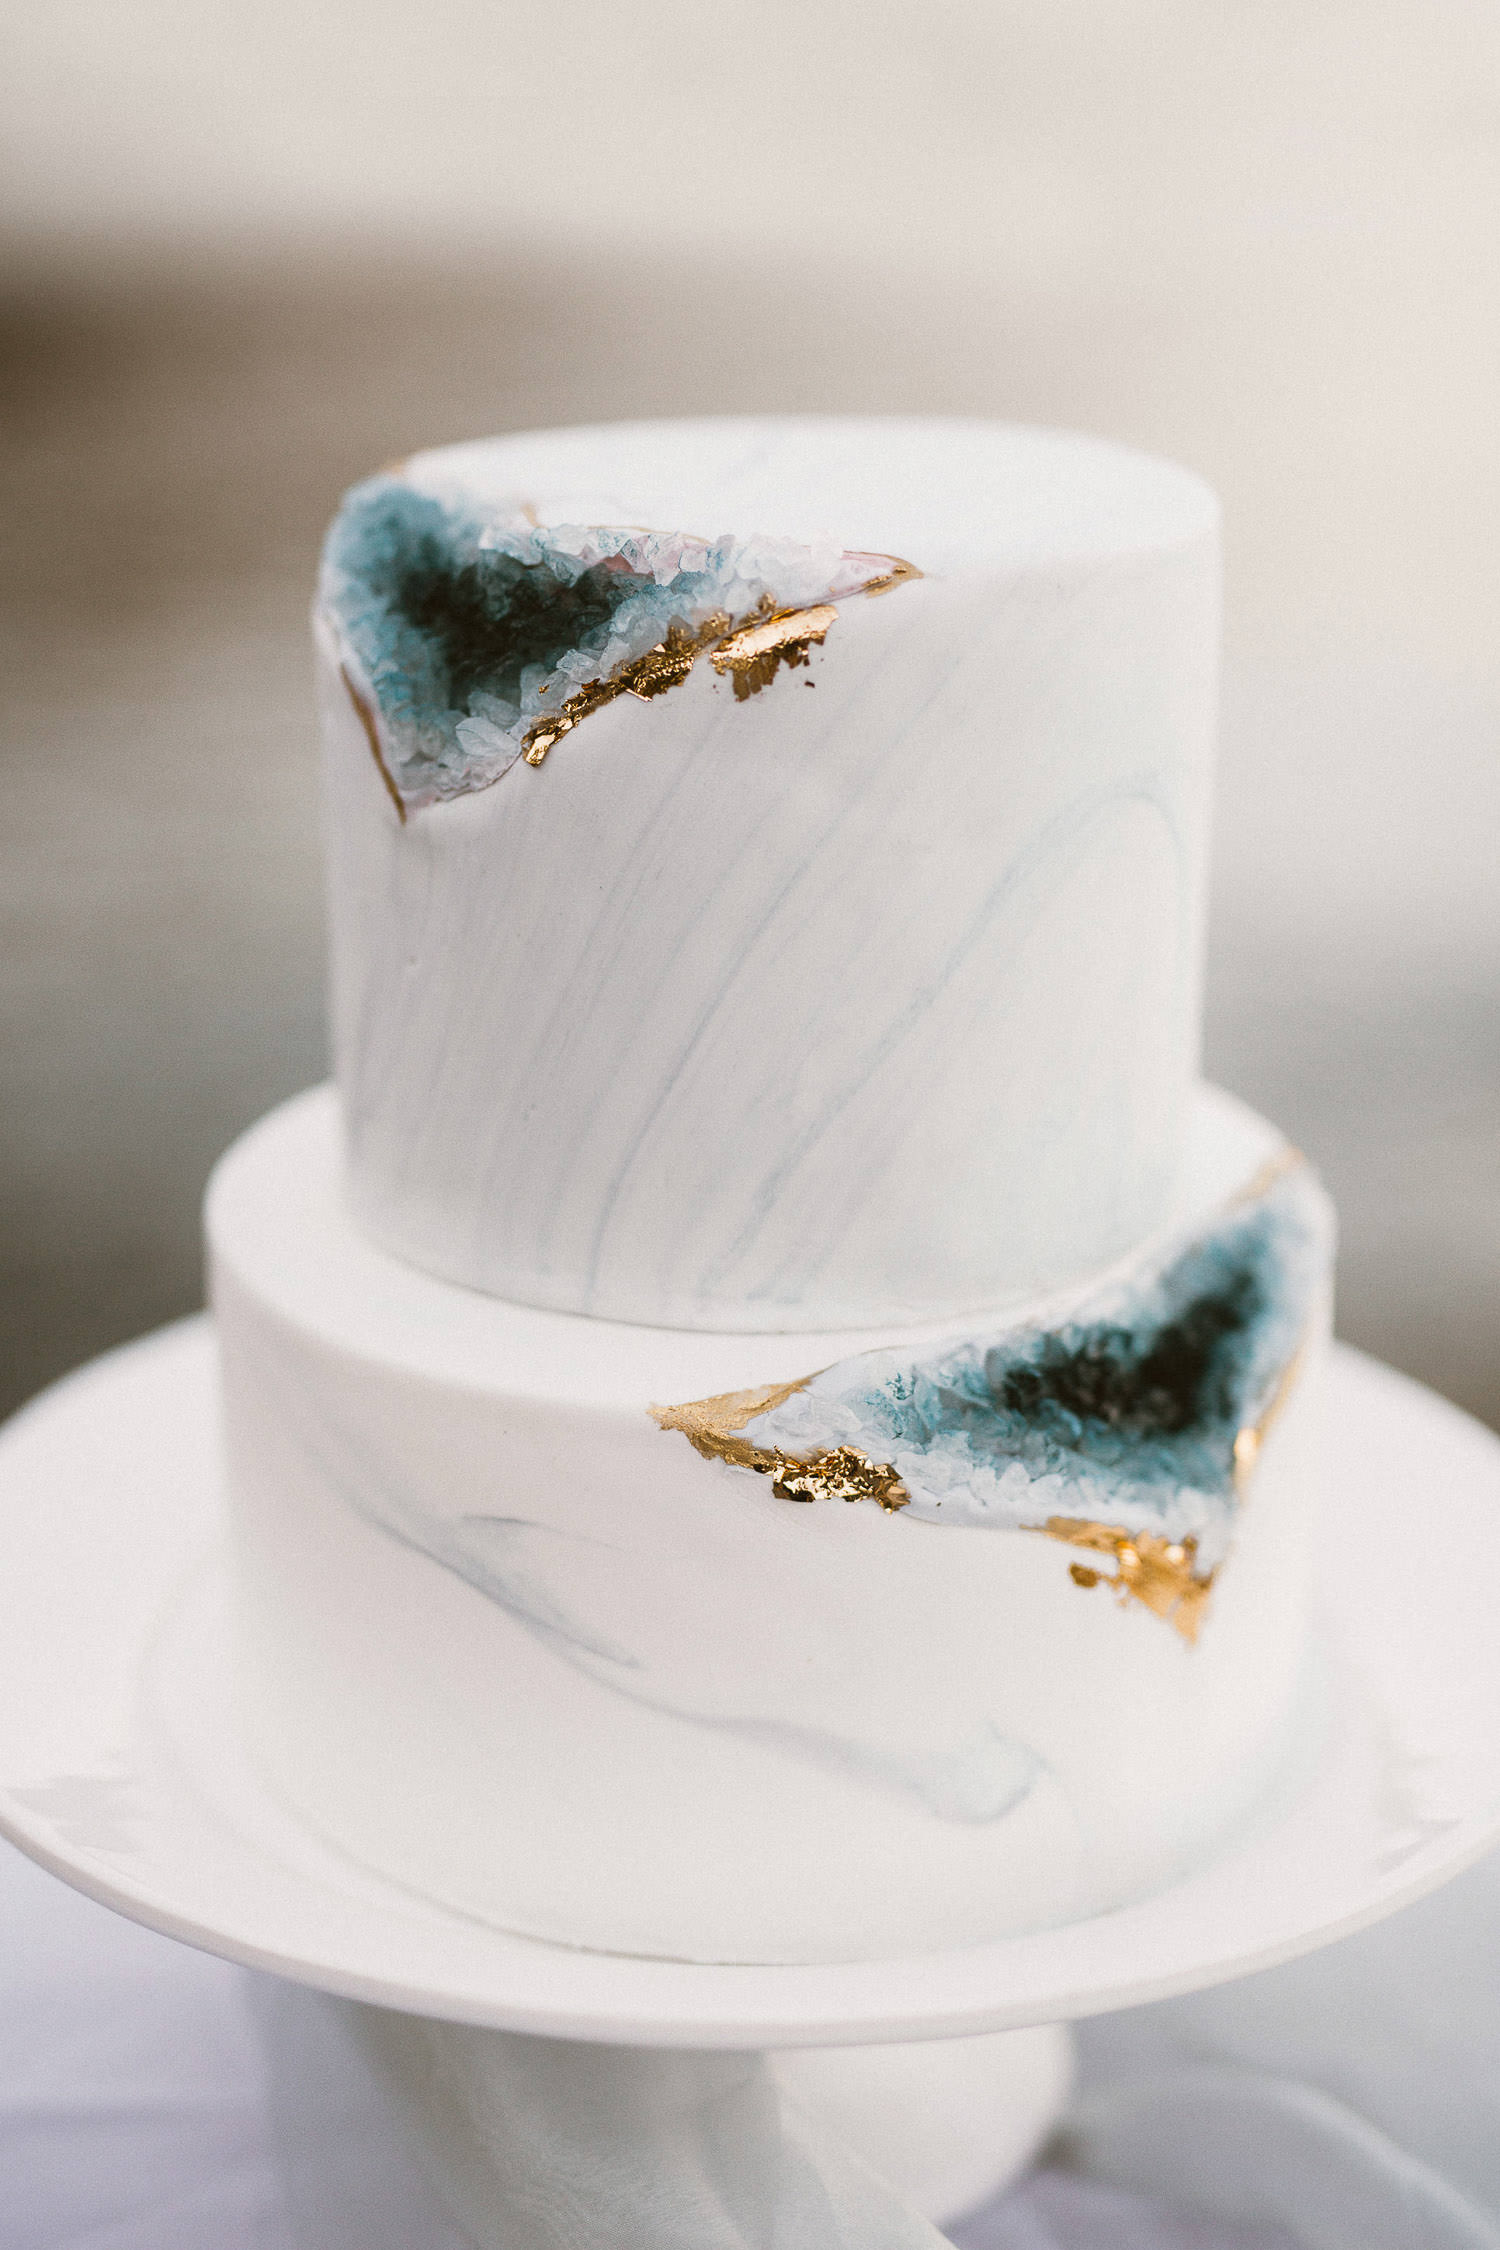 Refined wedding cake with crystal quartz inspiration created by Momo Chen Cakes